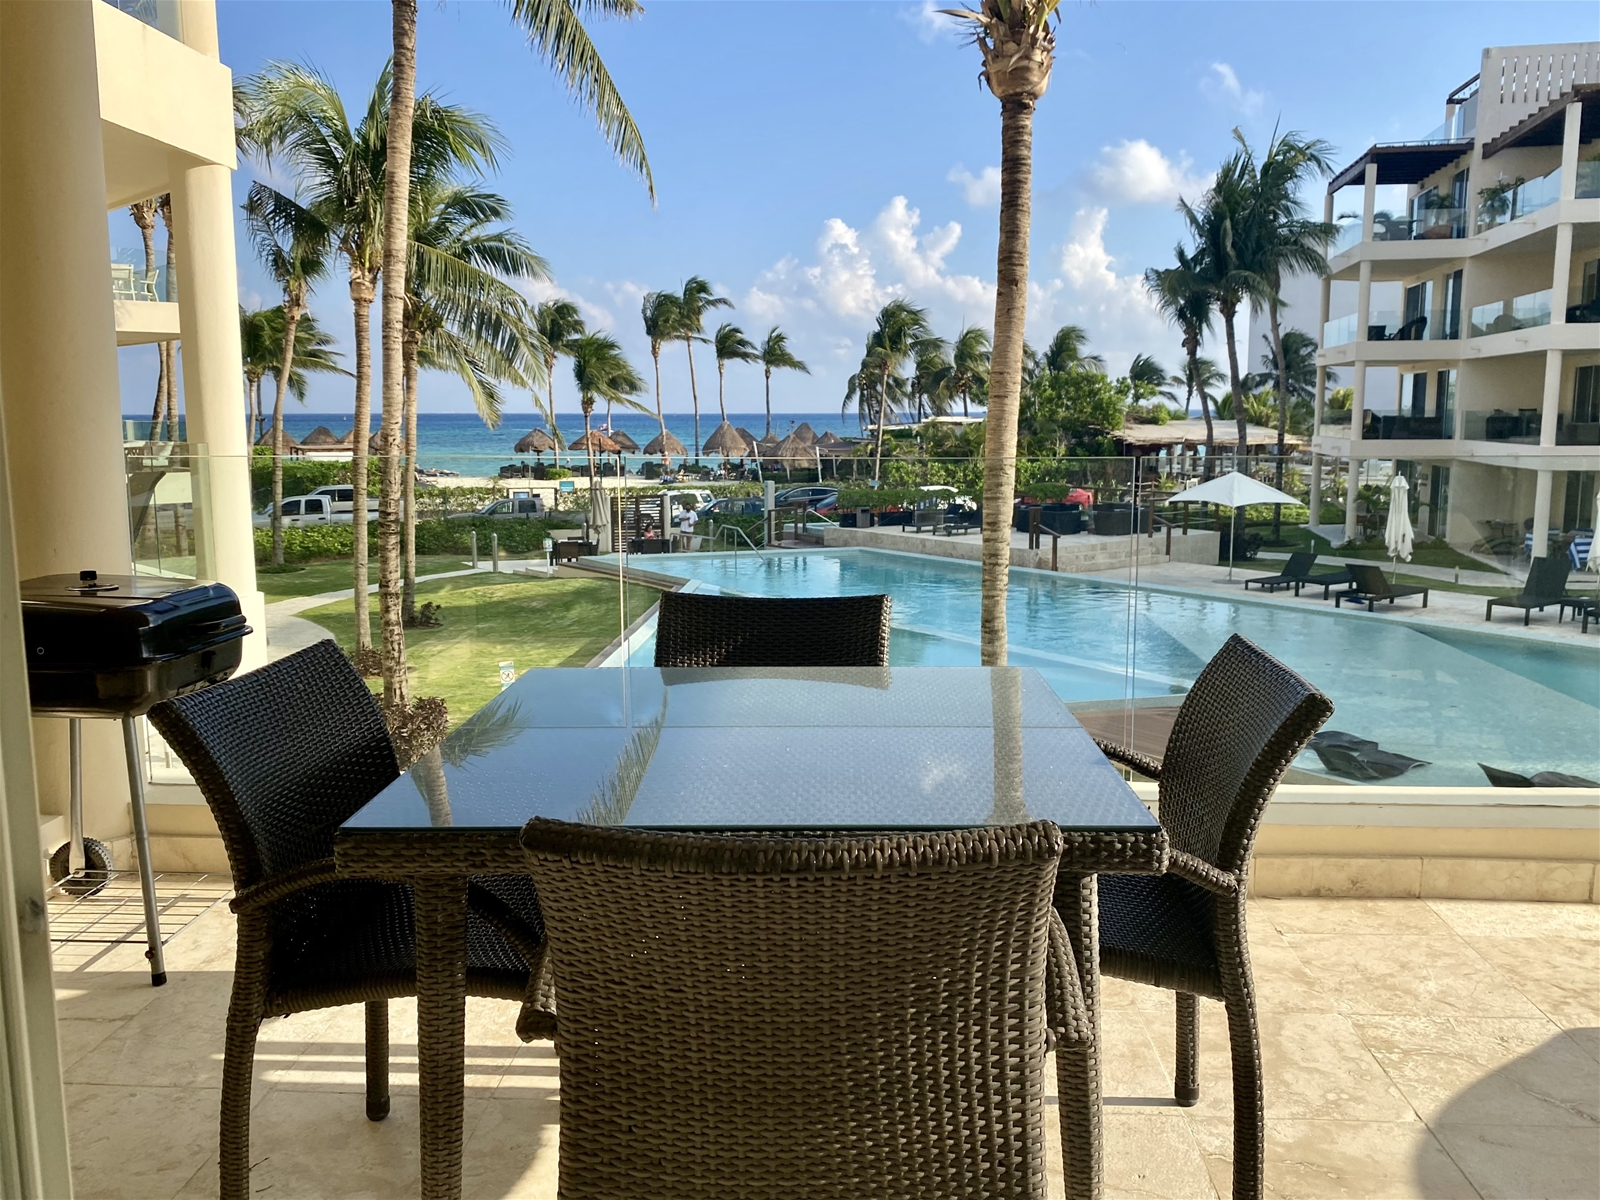 The Elements117 Playa del Carmen Condo Home For Sale Real Estate to Buy